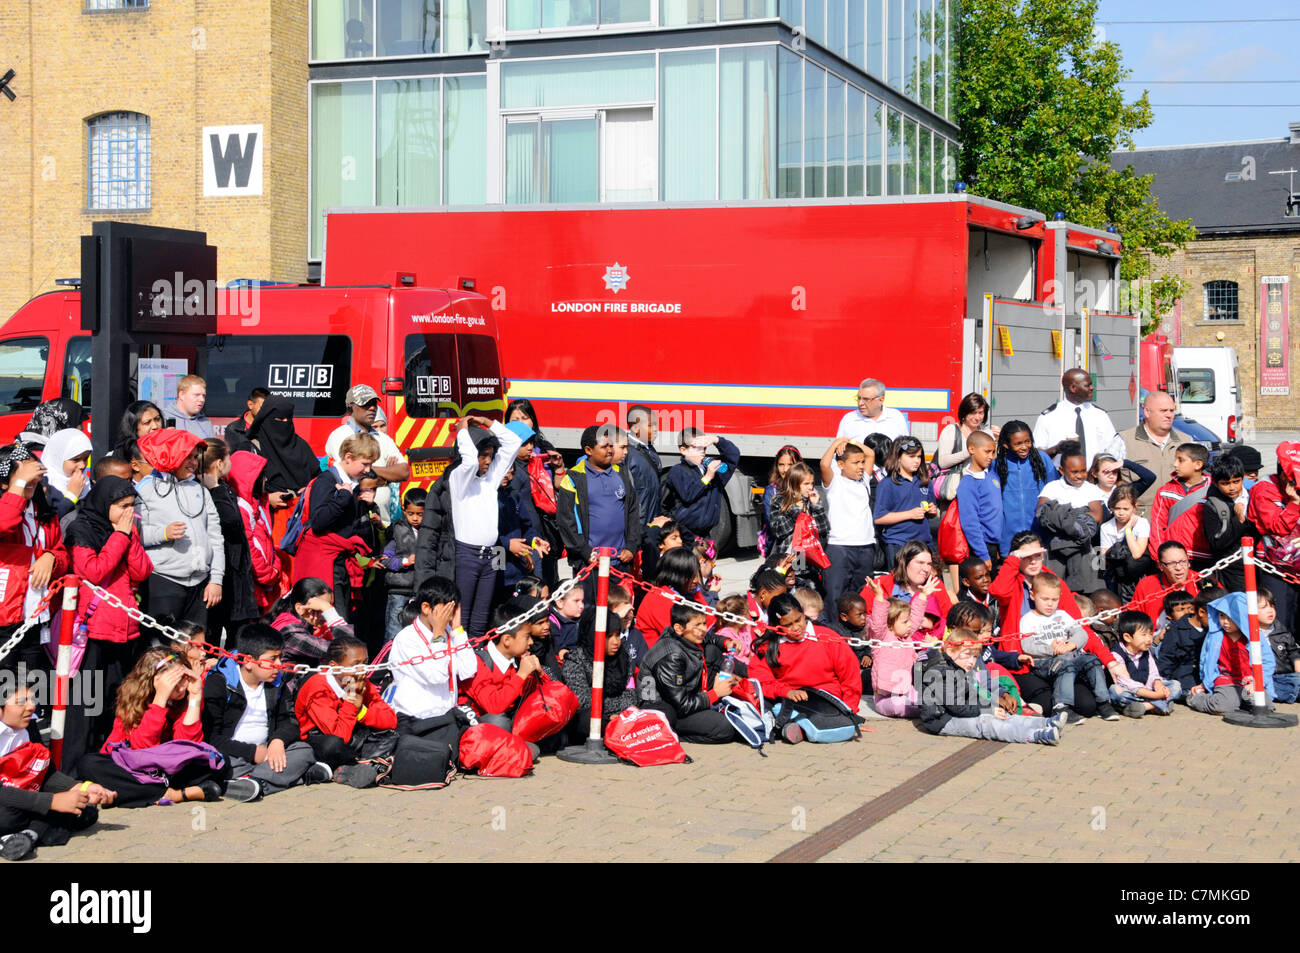 School children awaiting a fire safety talk and demonstration by London Fire Brigade The Excel Centre London England - Stock Image